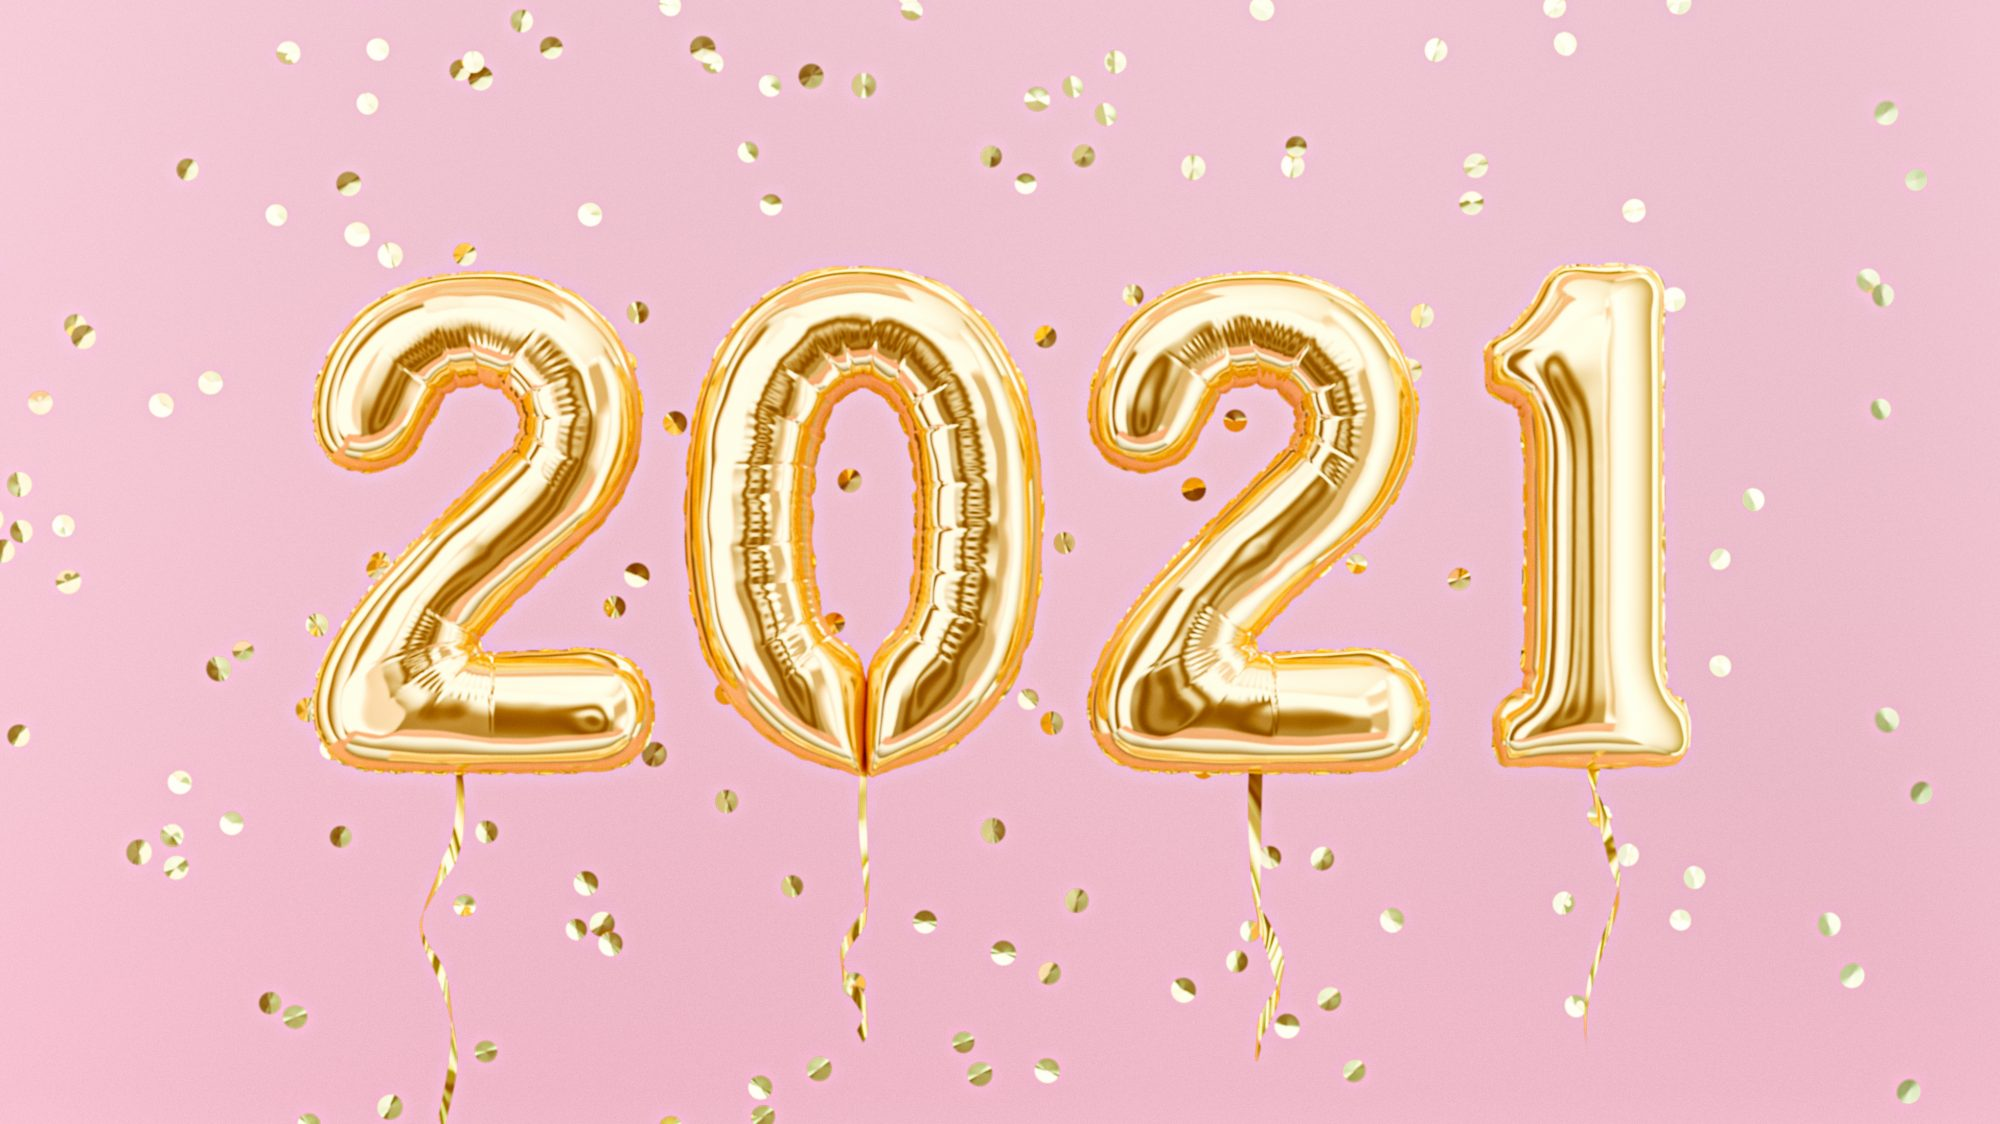 Dr. Richard Land Answers: Why Are People So Excited About the New Year?